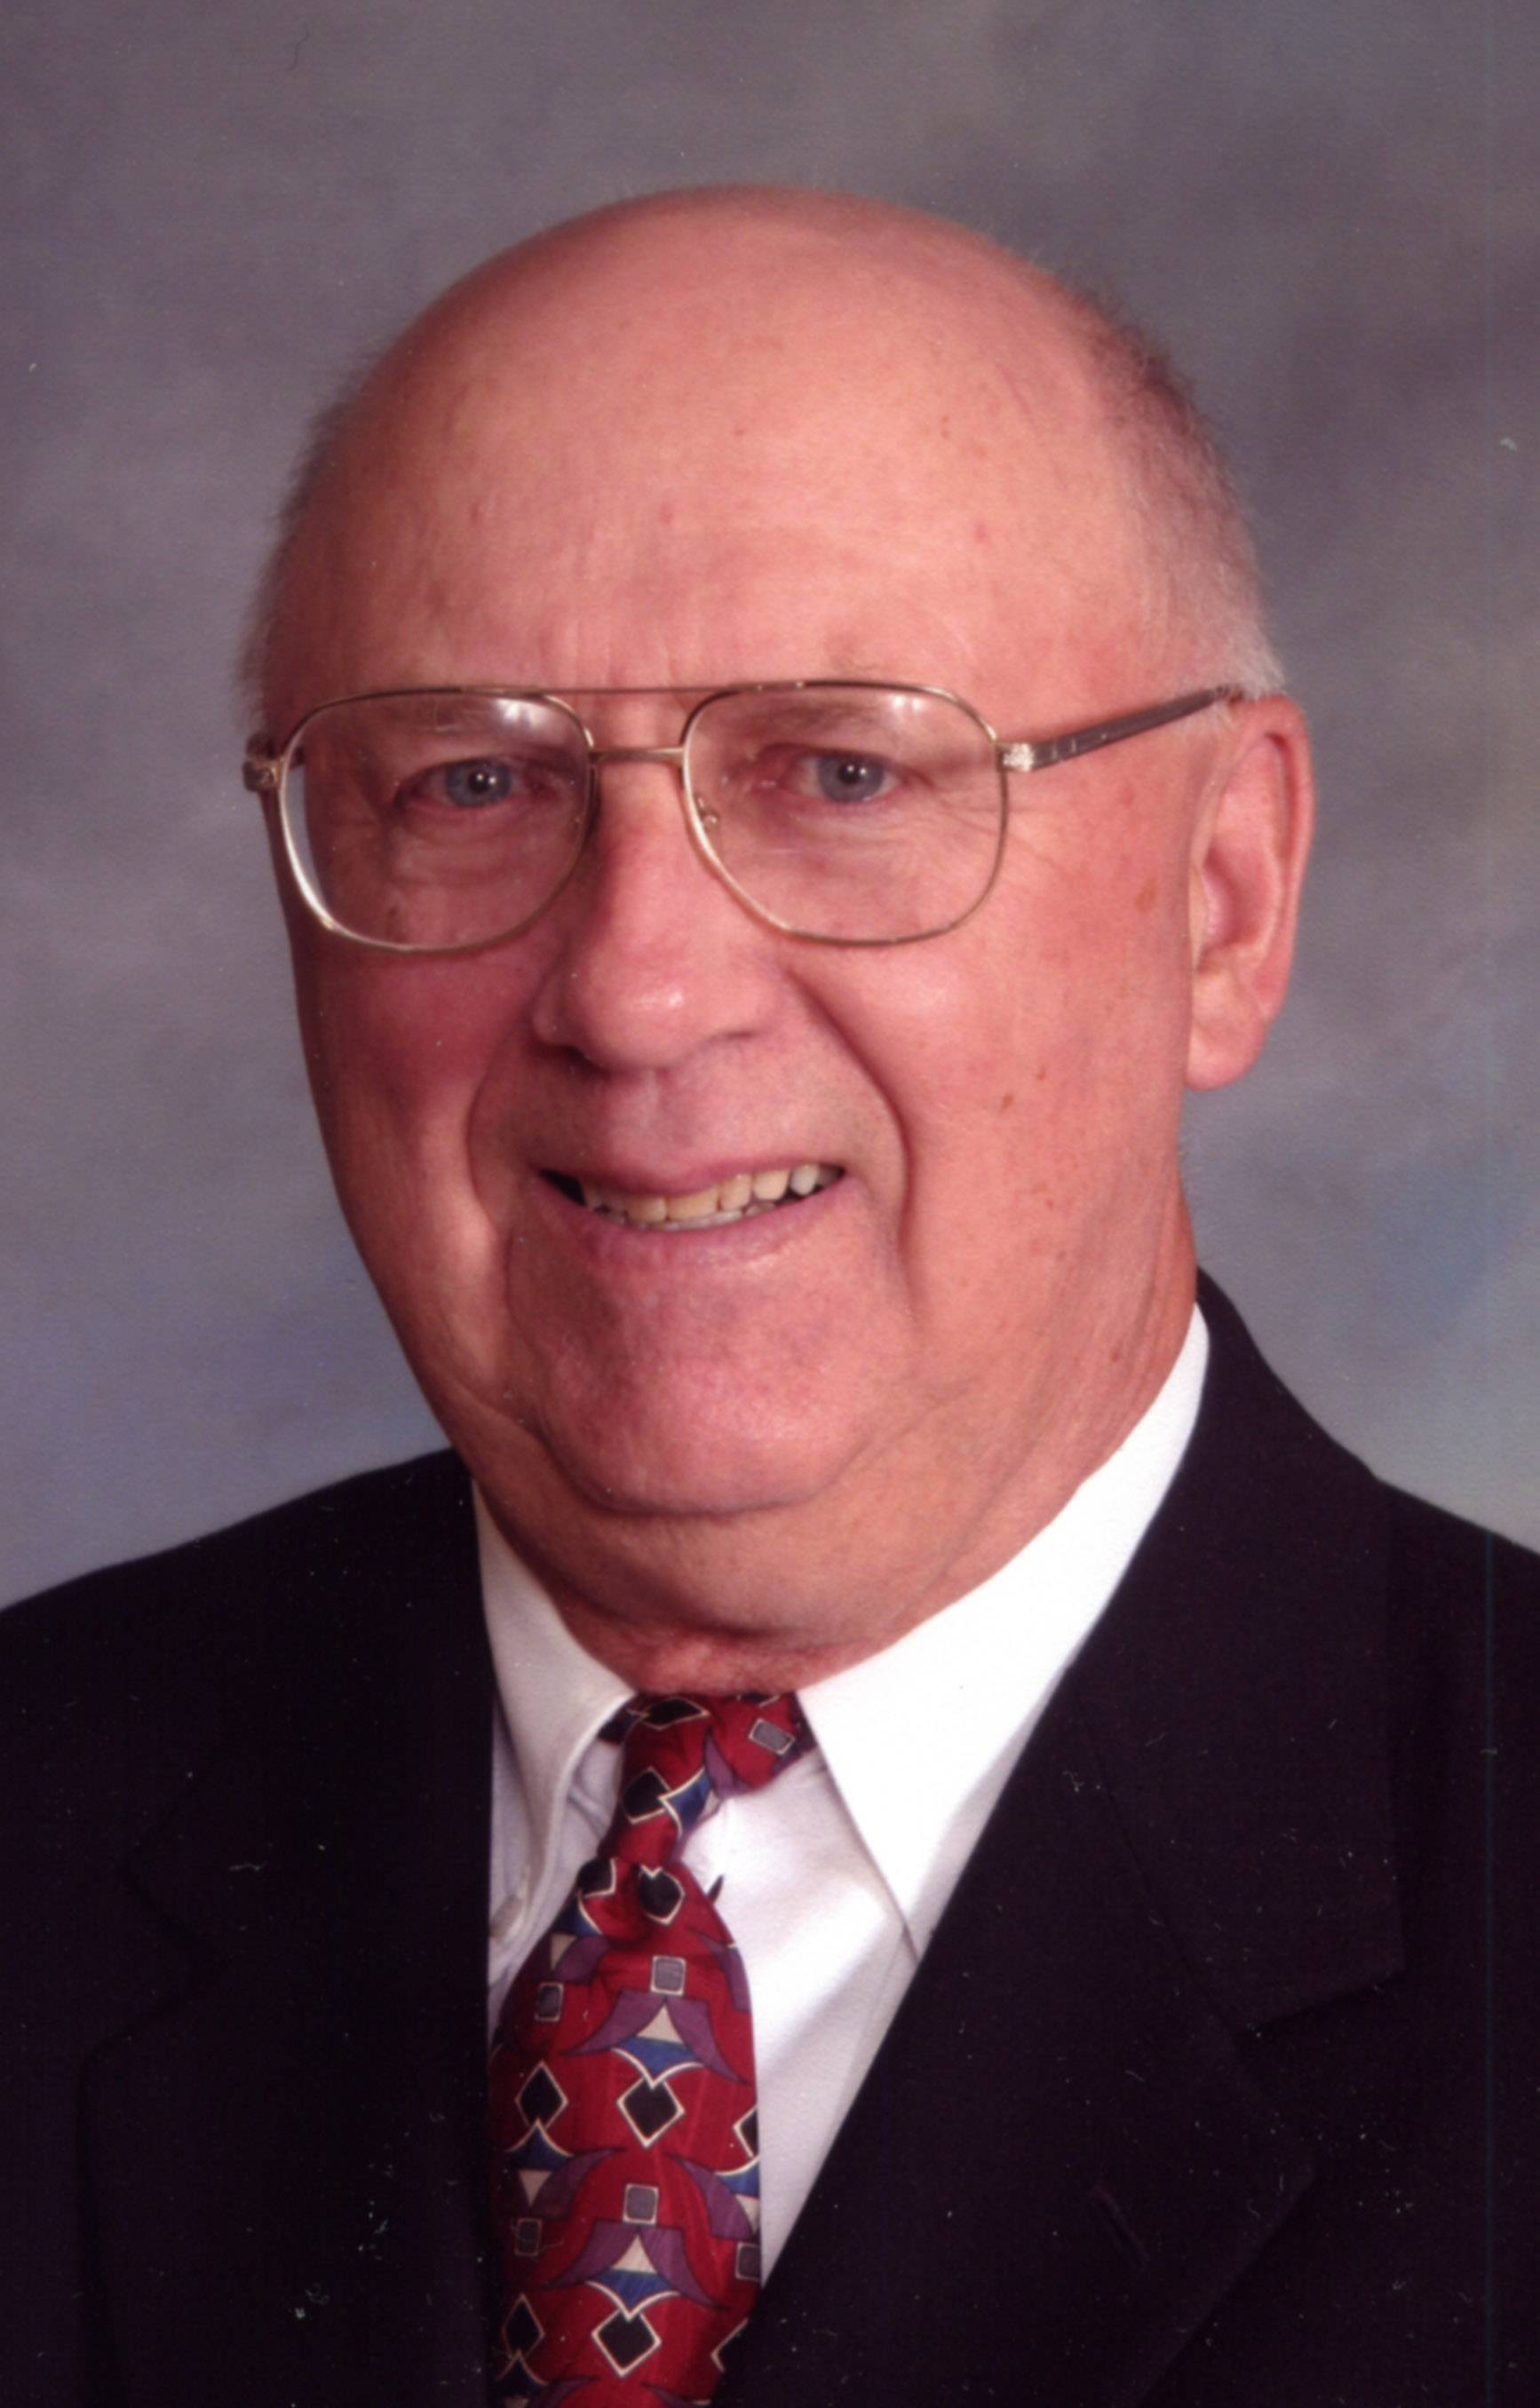 Lowell Cutsforth, running for Algonquin Township Board (4-year Terms)